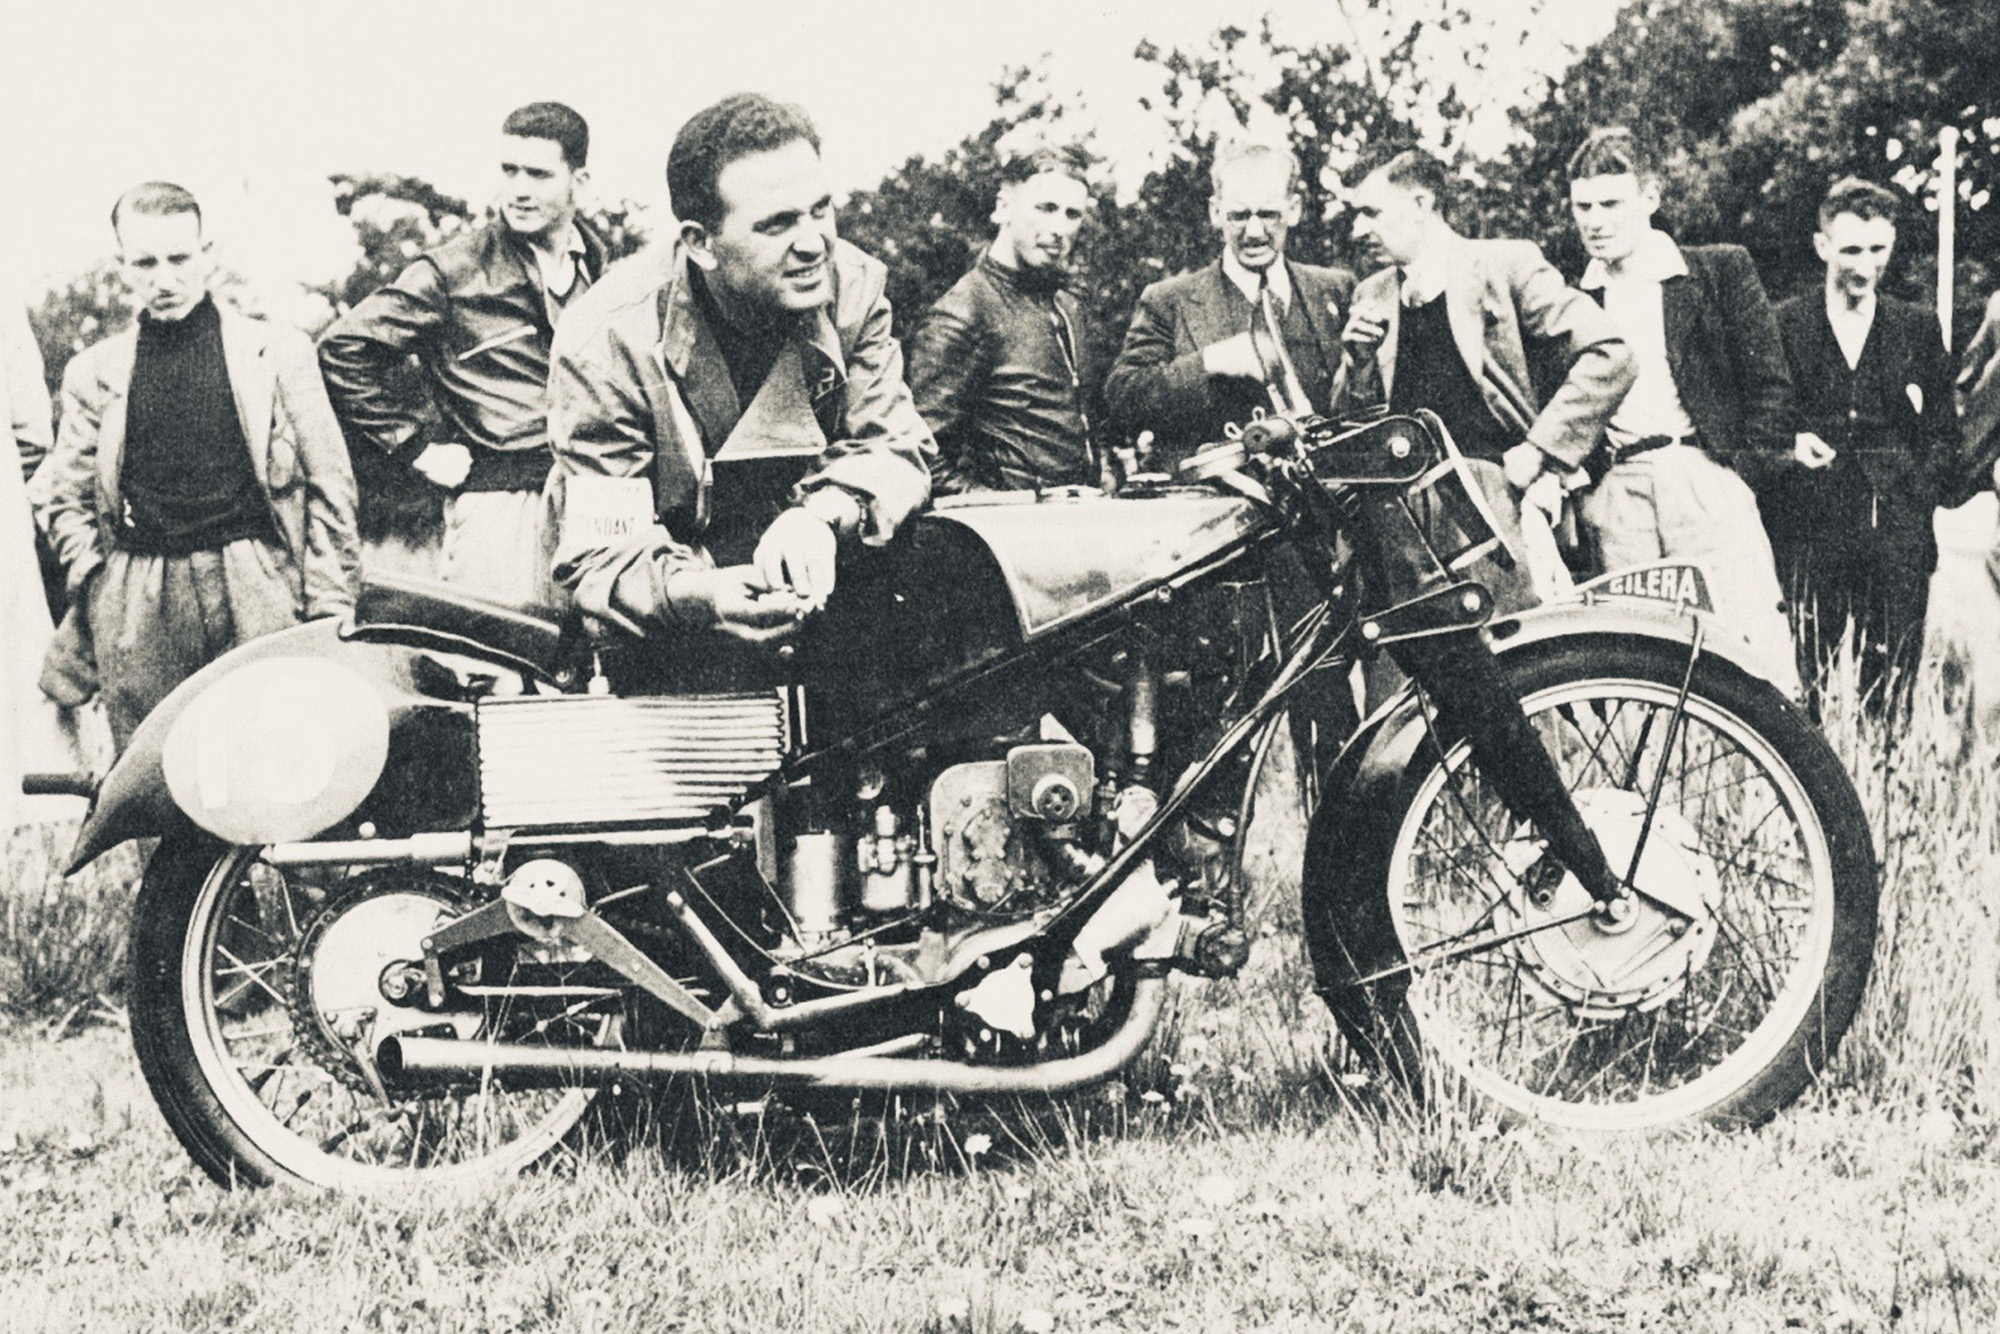 Dorino Sefarini with a Gilera four